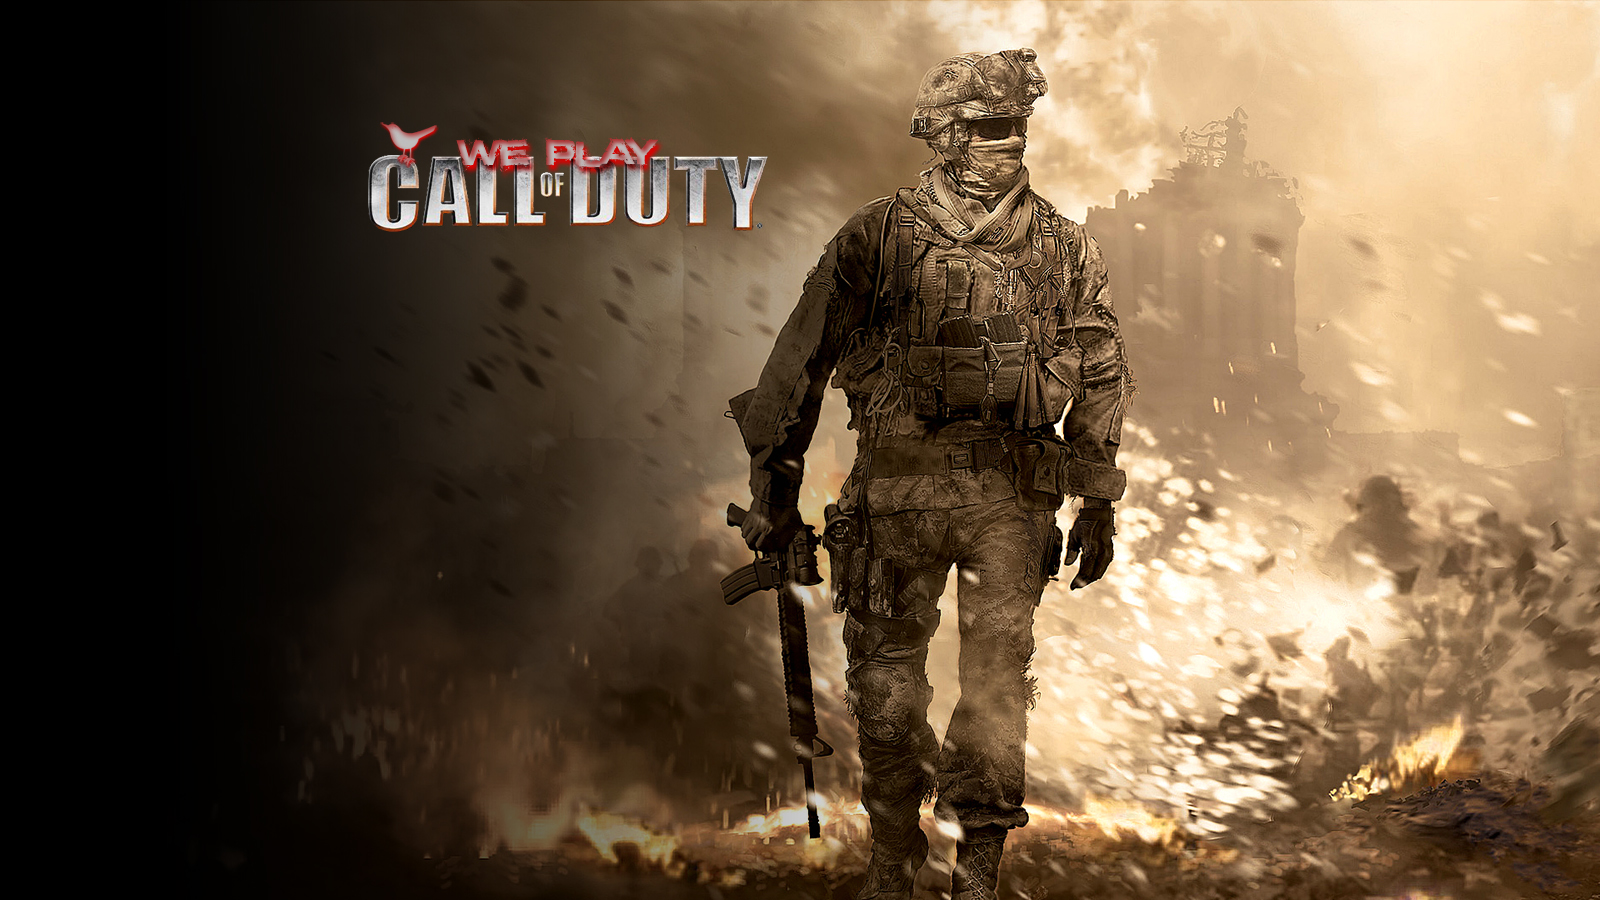 Free Download Wallpapers Mw2weplaycod Mw2 Cod Waw And Weplaycod